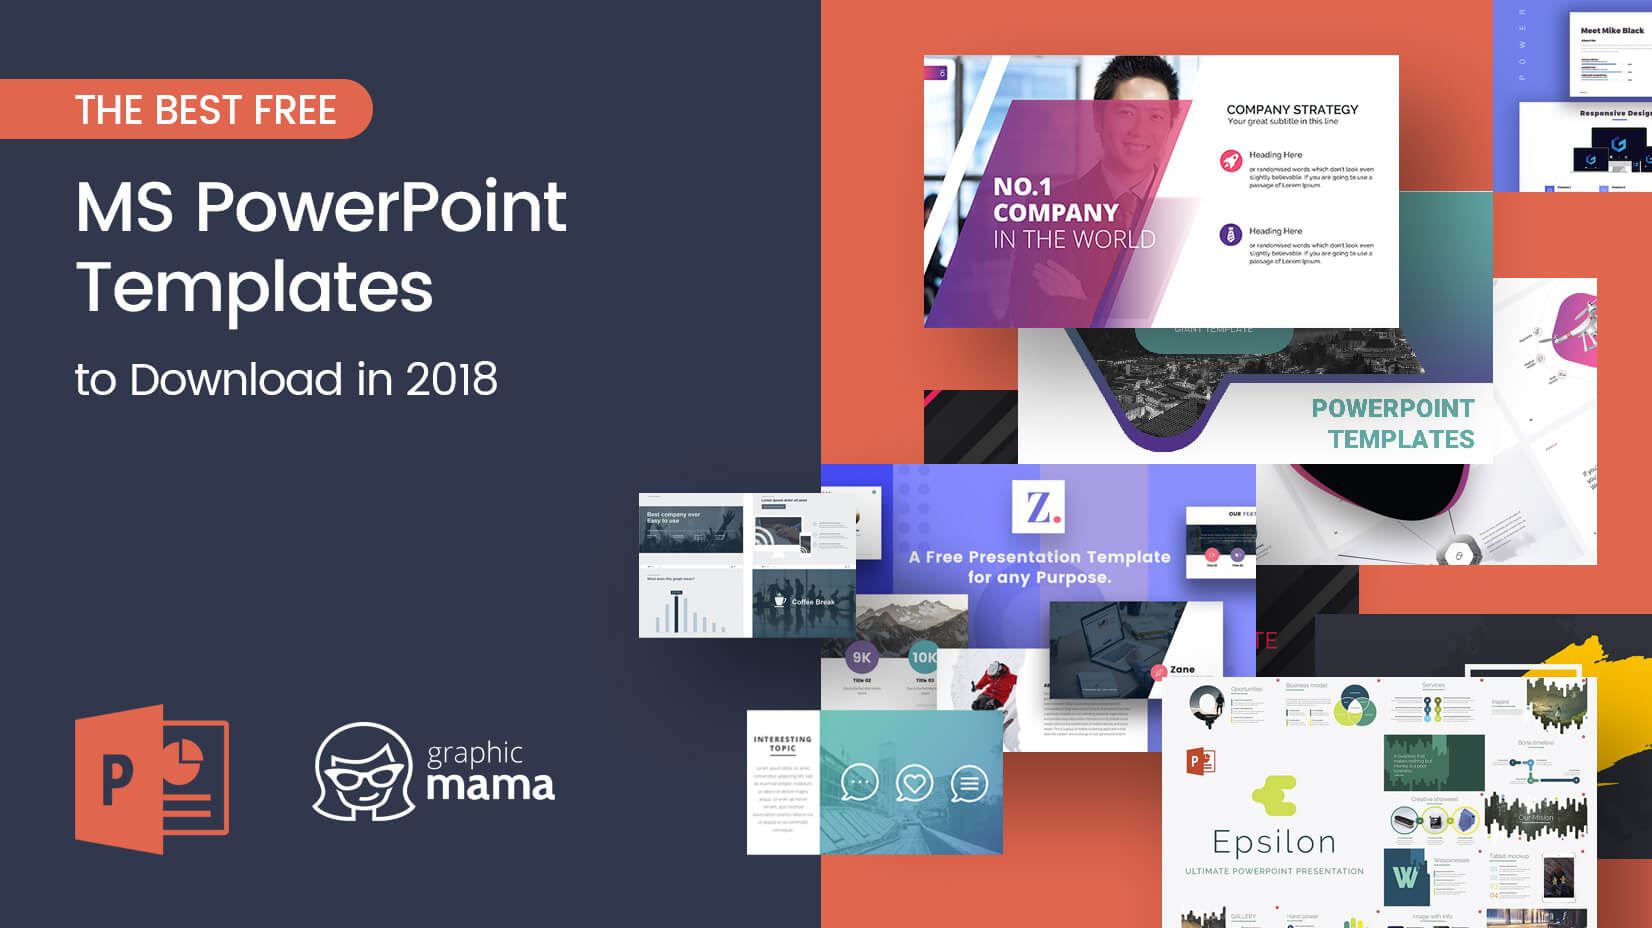 e709549918bd The Best Free PowerPoint Templates to Download in 2018